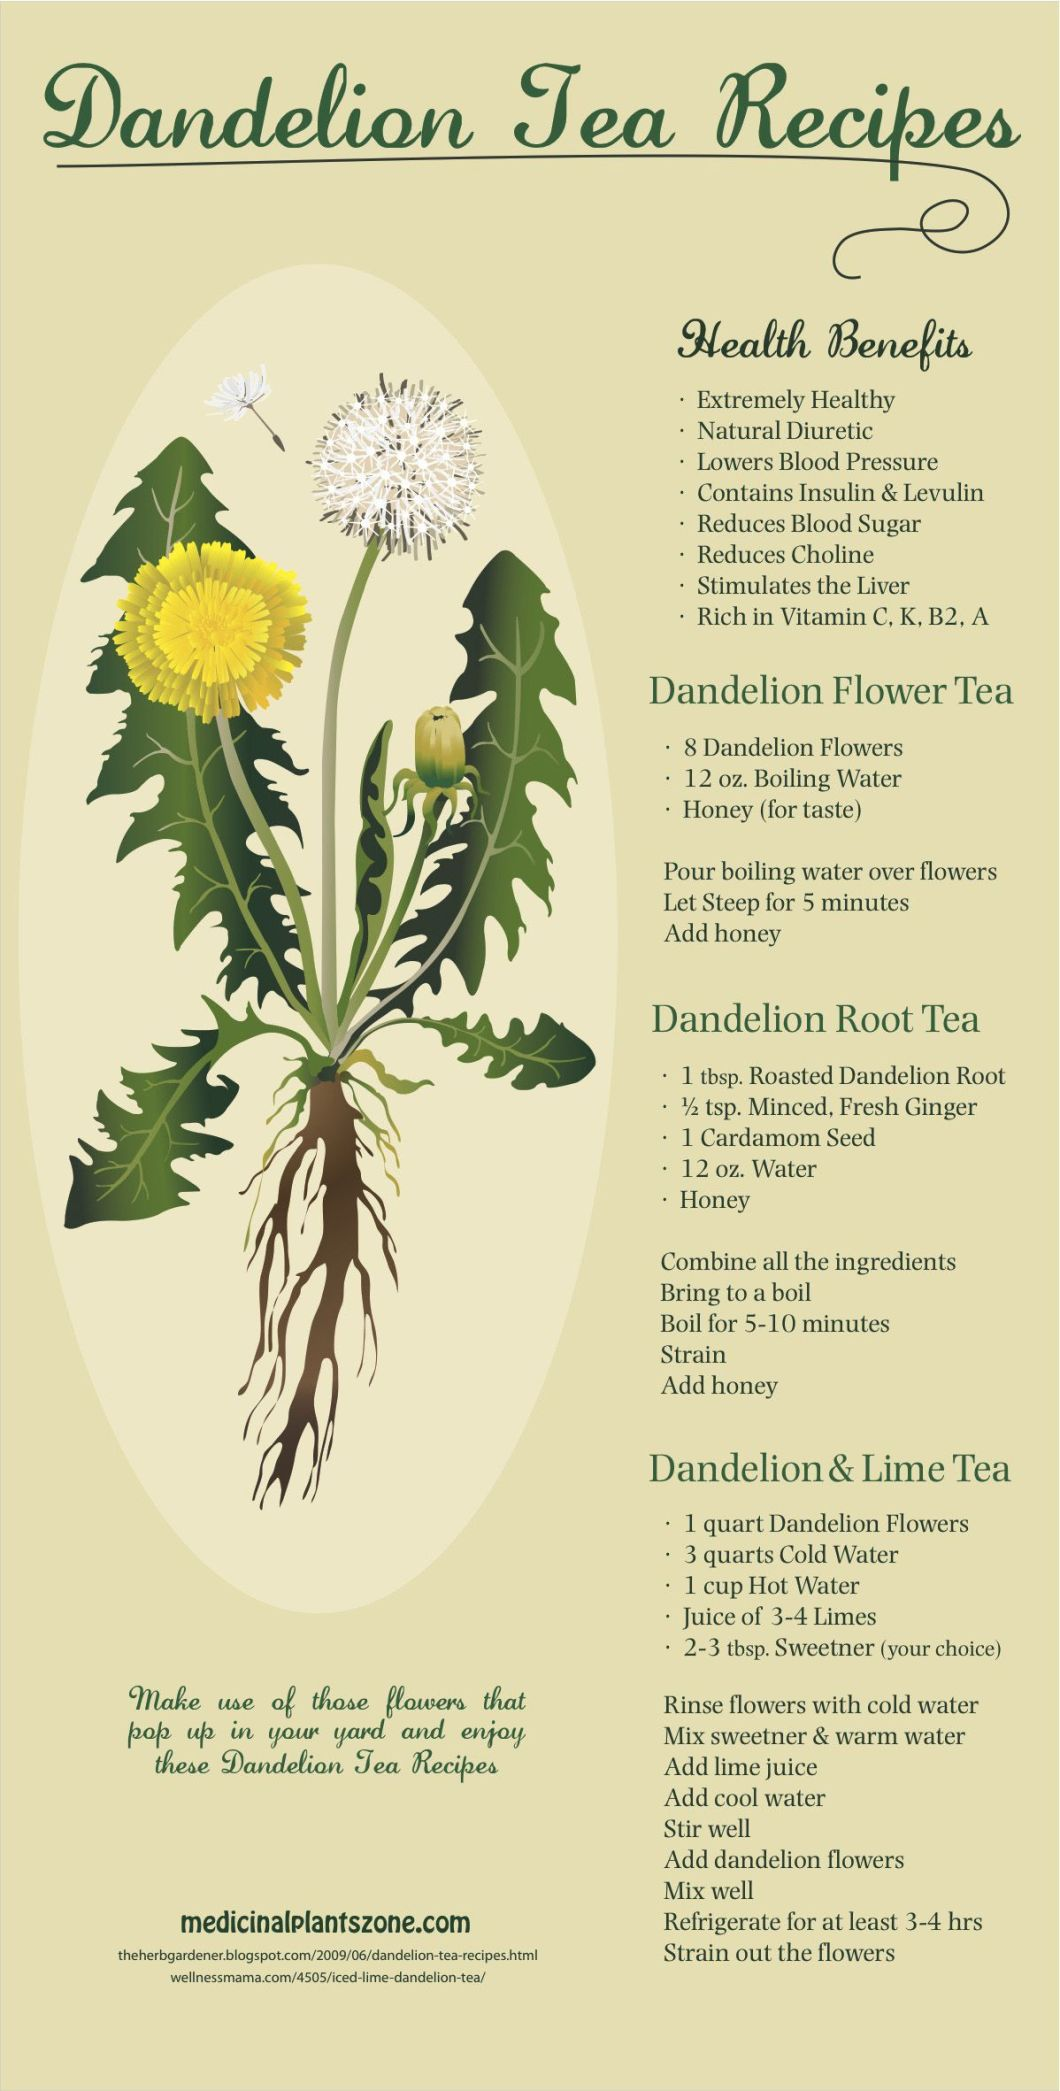 Sip Your Way to Wellness: Dandelion Tea Recipes - Infographic